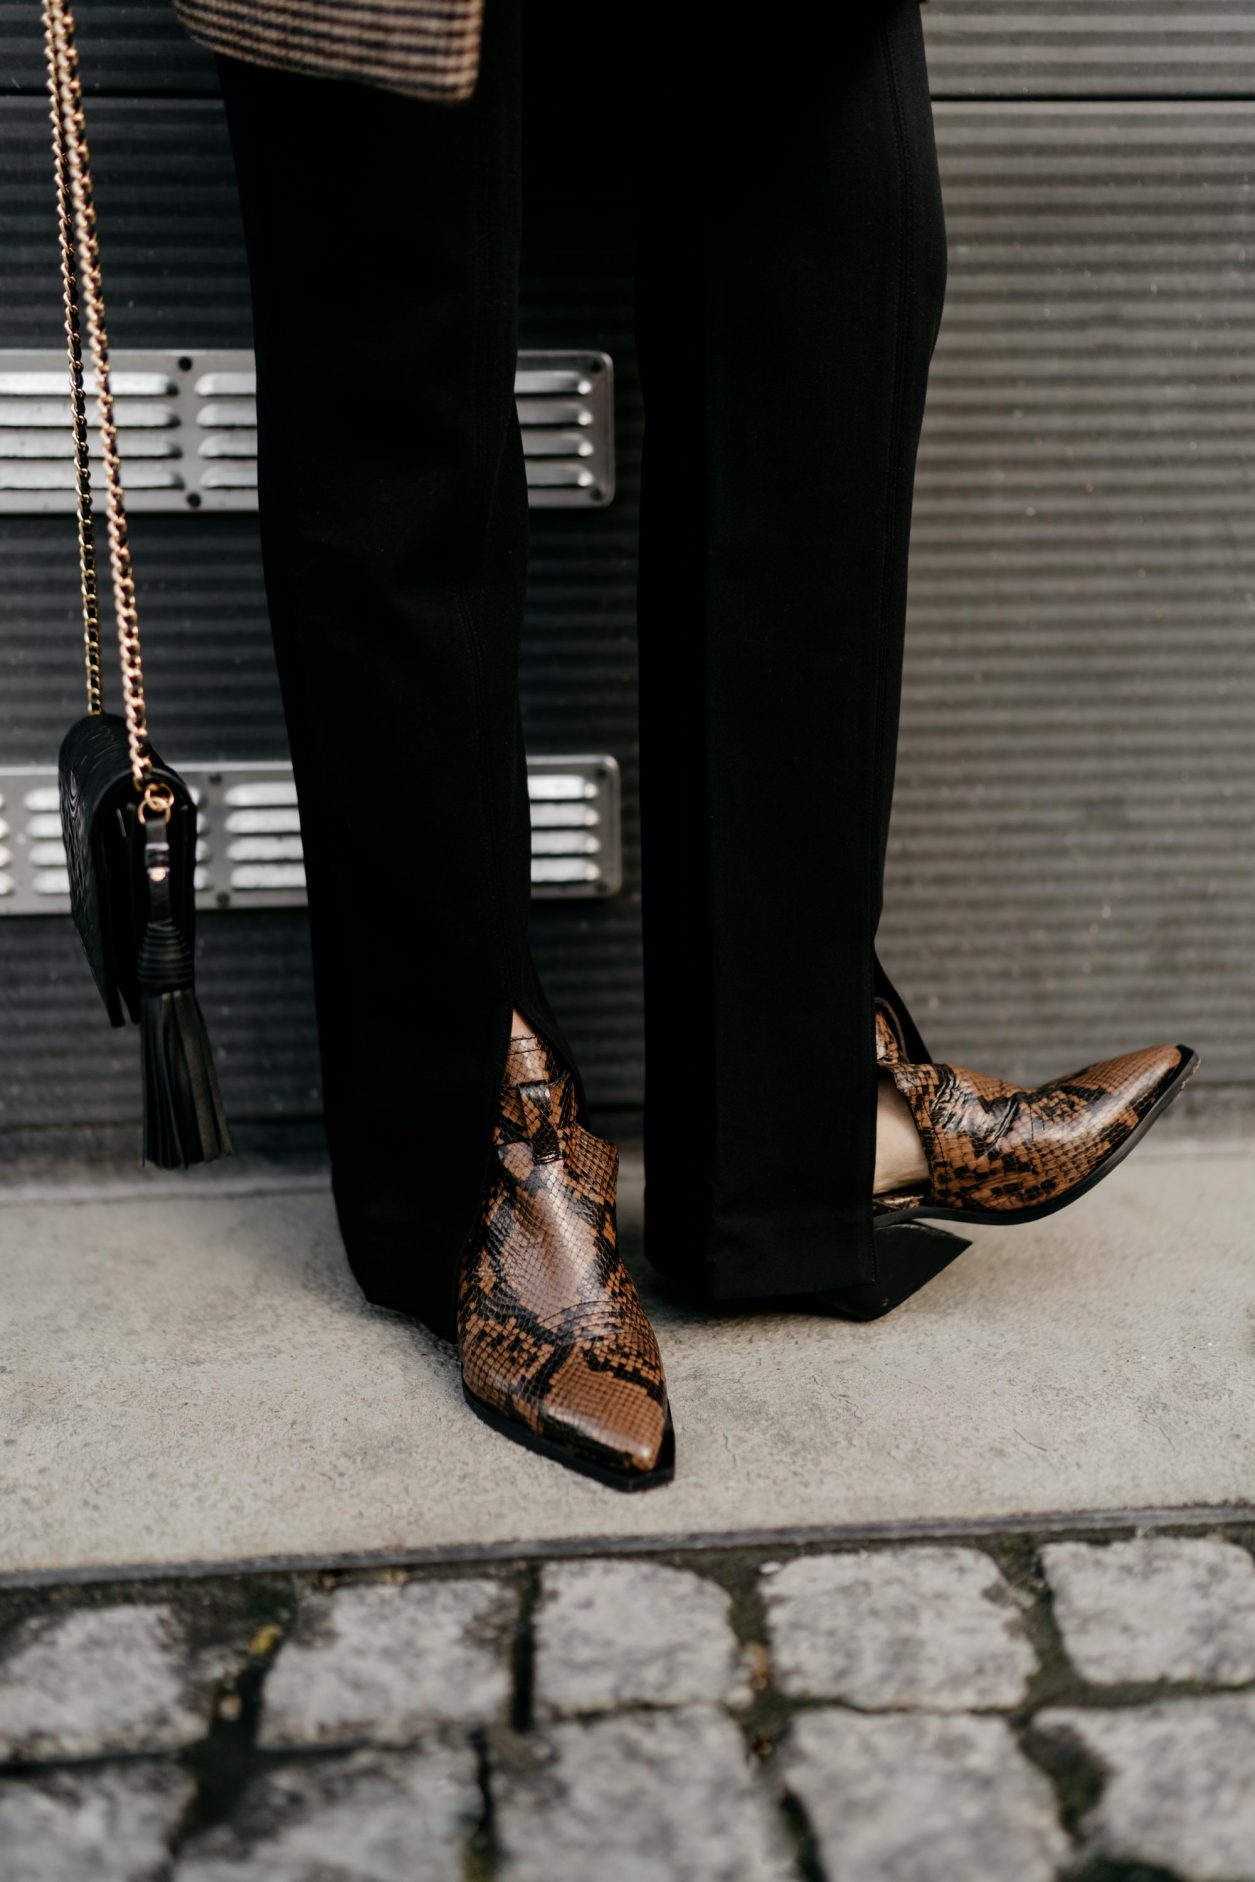 Outfit details by Masha Sedgwick | Fashion blogger from Berlin, Germany | Everyday business casual outfit inspiration, wearing front splits black tailored pants by Samsoe Samsoe, brown sneak leather open boots by Zign, Tory Burch shoulder mini bag